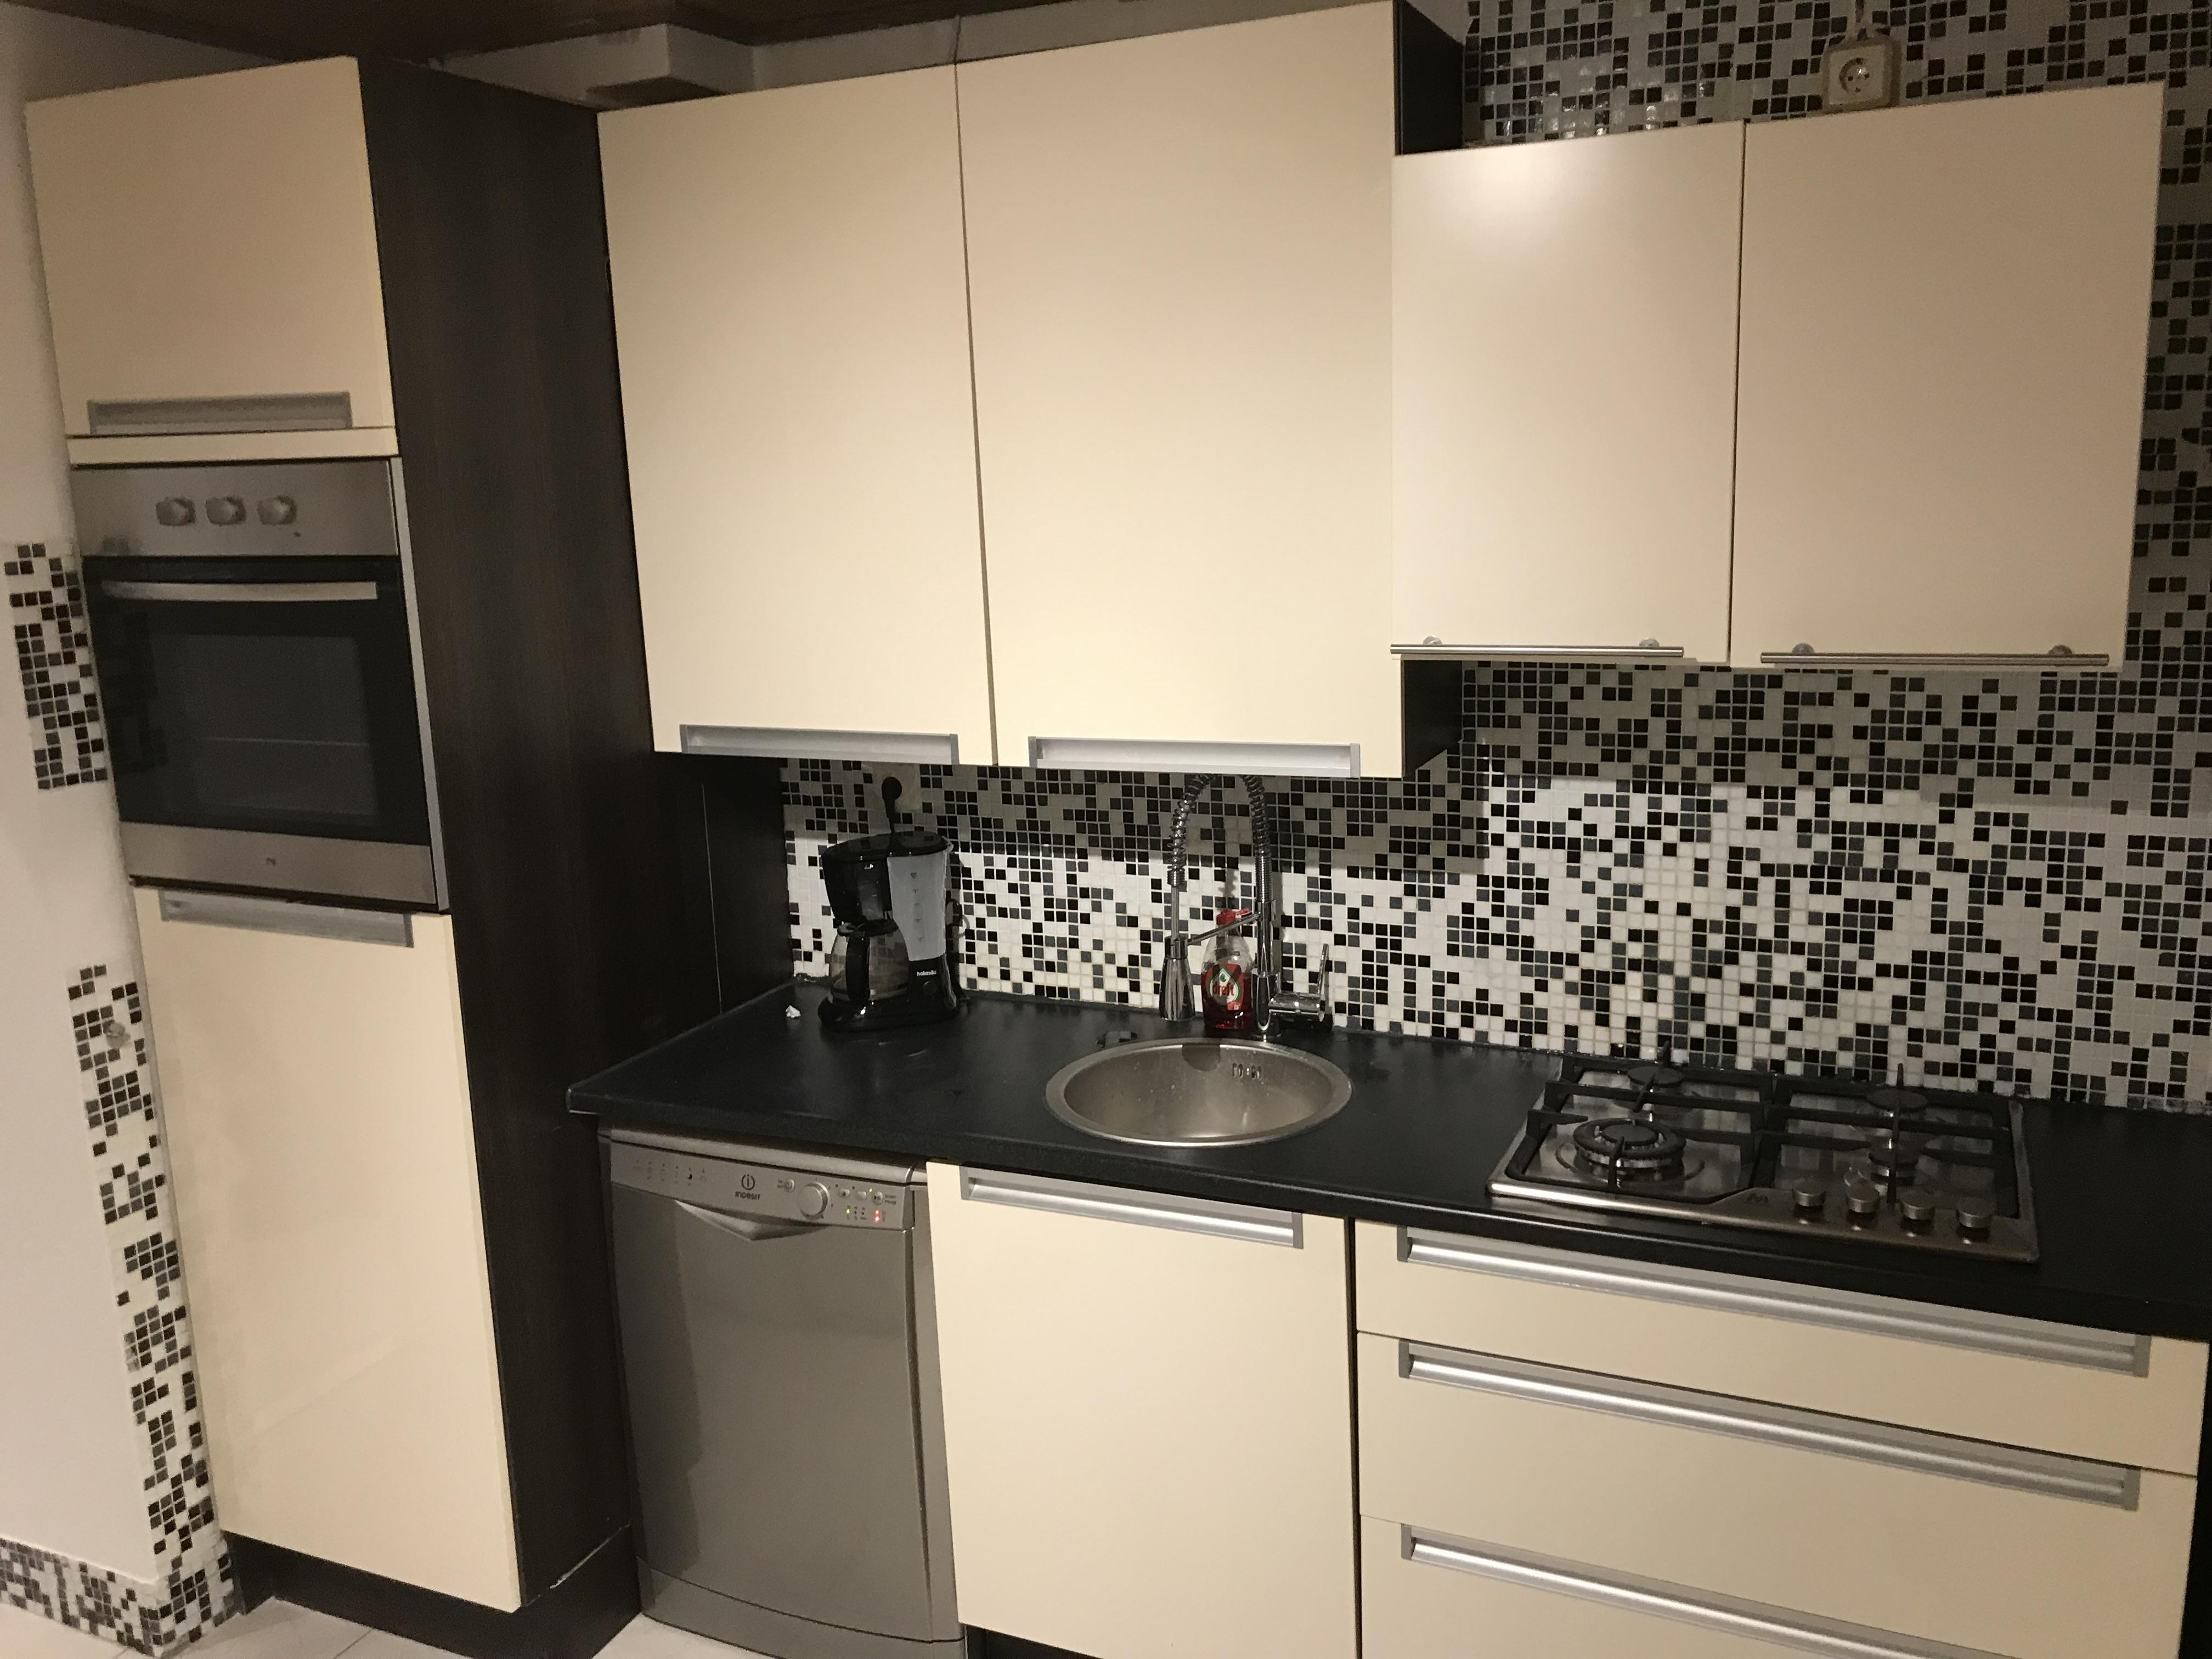 Apartment Danis place Close to Station Vlugtlaan photo 277654